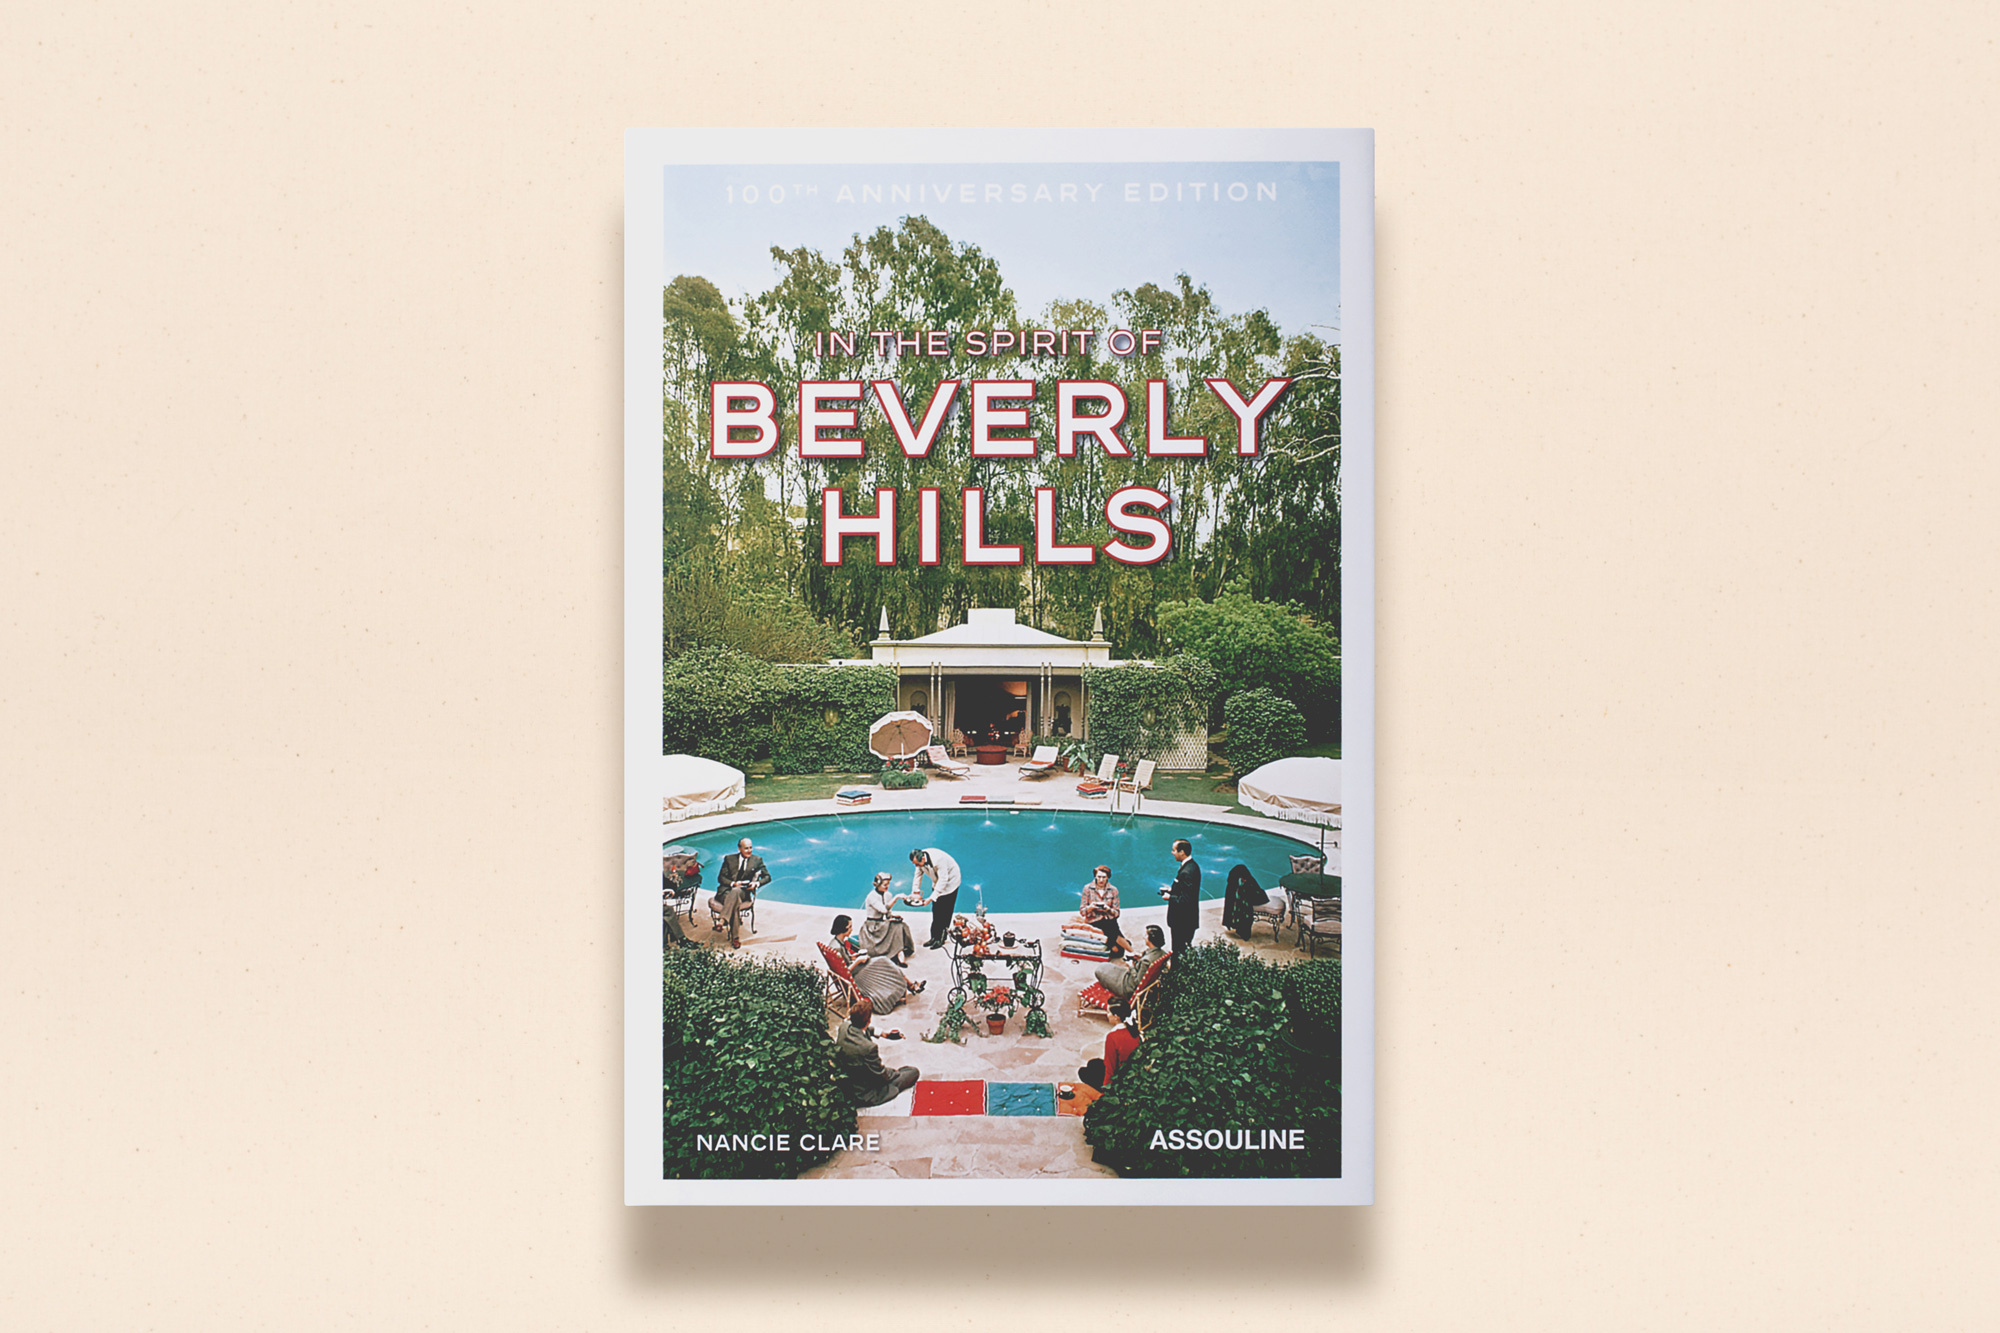 In-The-Spirit-of-Beverly-Hills